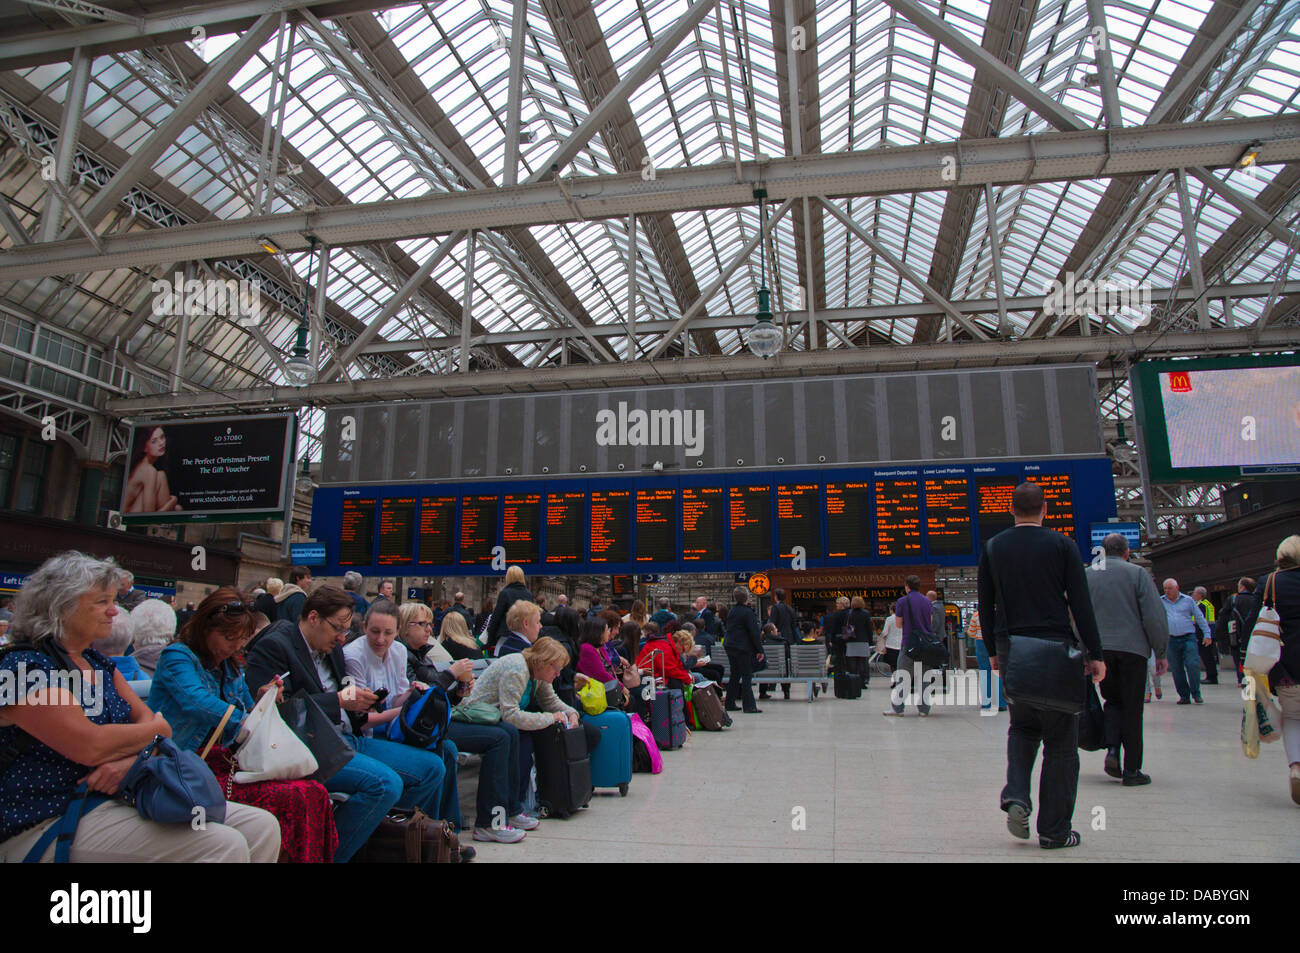 Central station Glasgow Scotland Britain UK Europe Stock Photo